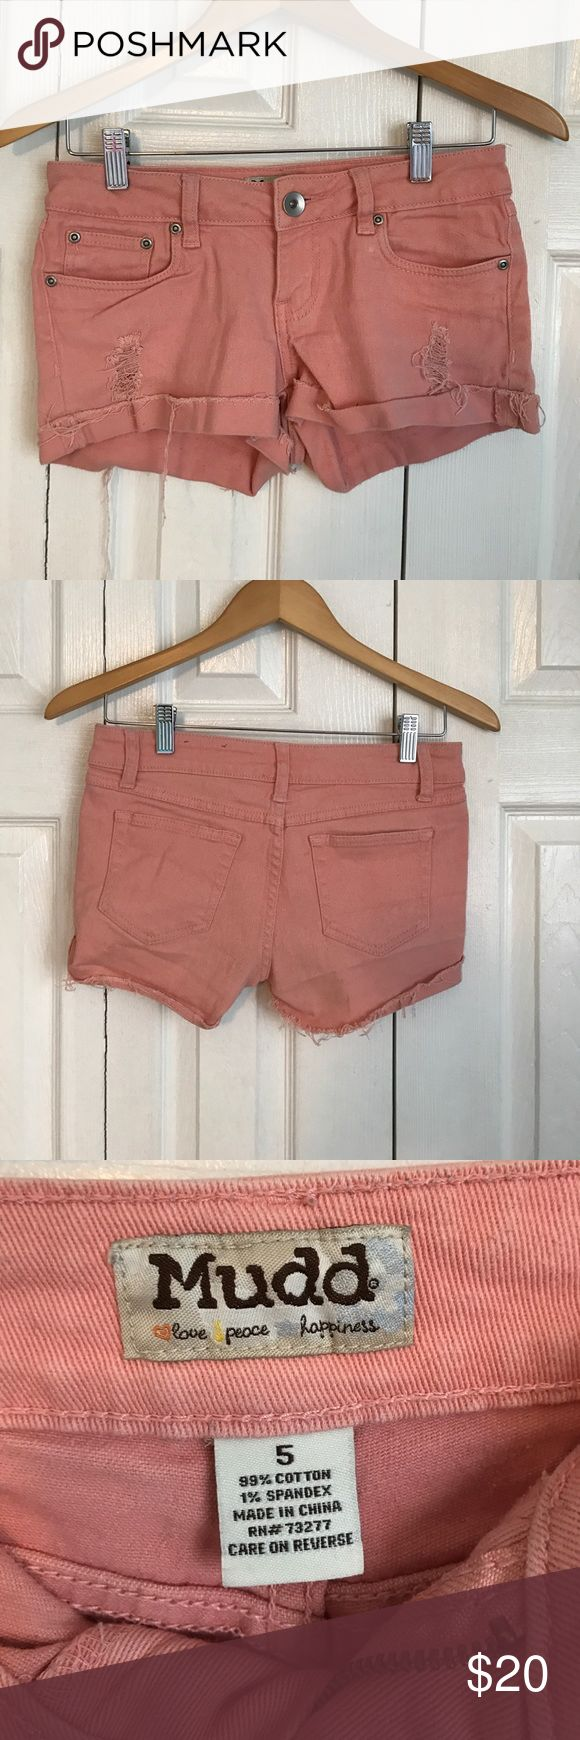 Cute junior coral jean shorts These shorts are perfect for the summer. They are very comfortable and in good condition. They are the ripped jean style. If you have any questions, feel free to contact me! Mudd Shorts Jean Shorts